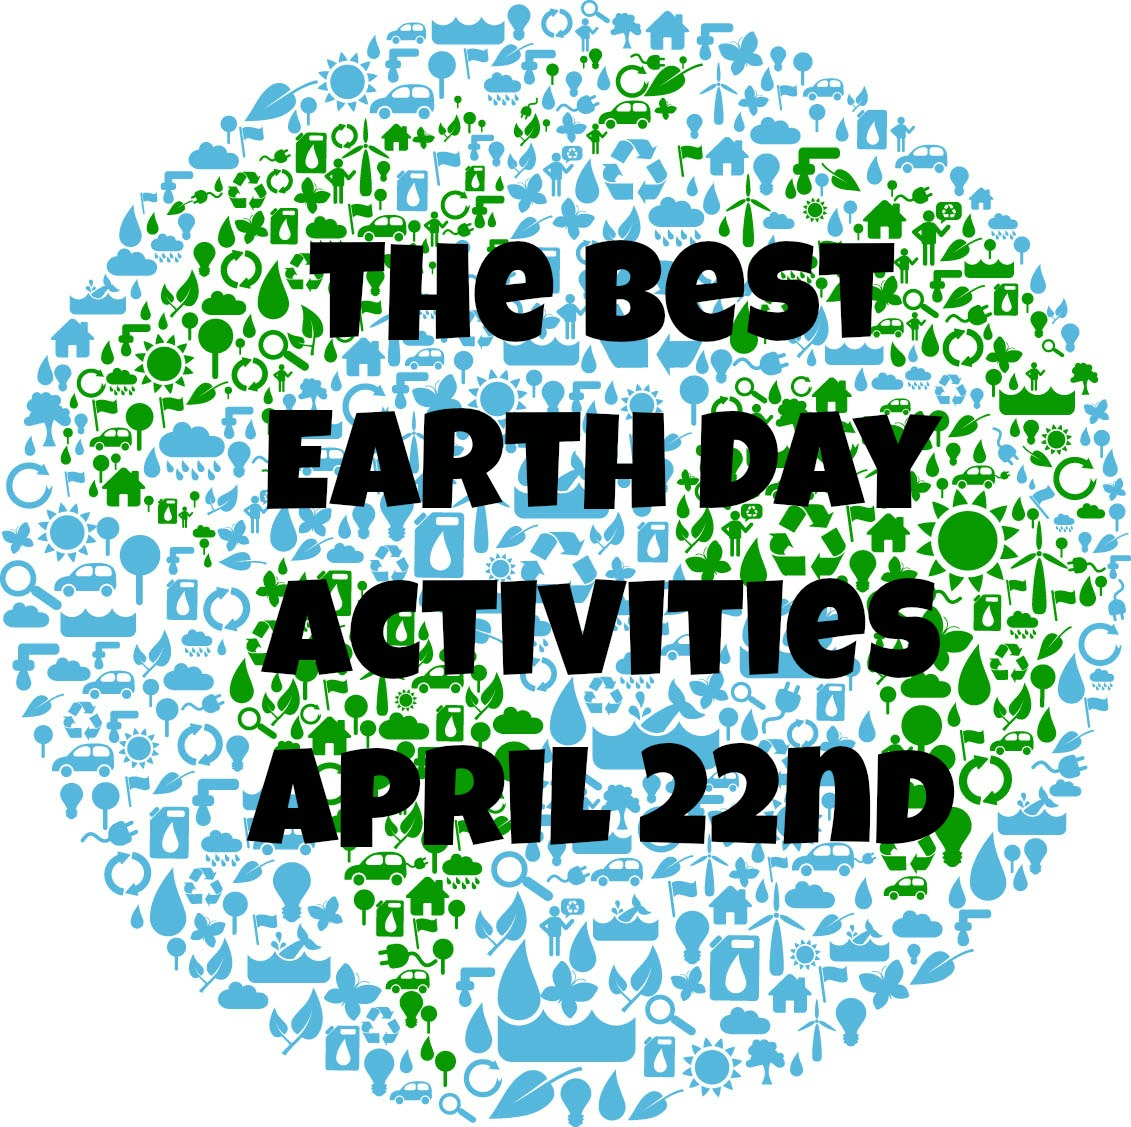 Some of the Best Things in Life are Mistakes Earth Day Activities